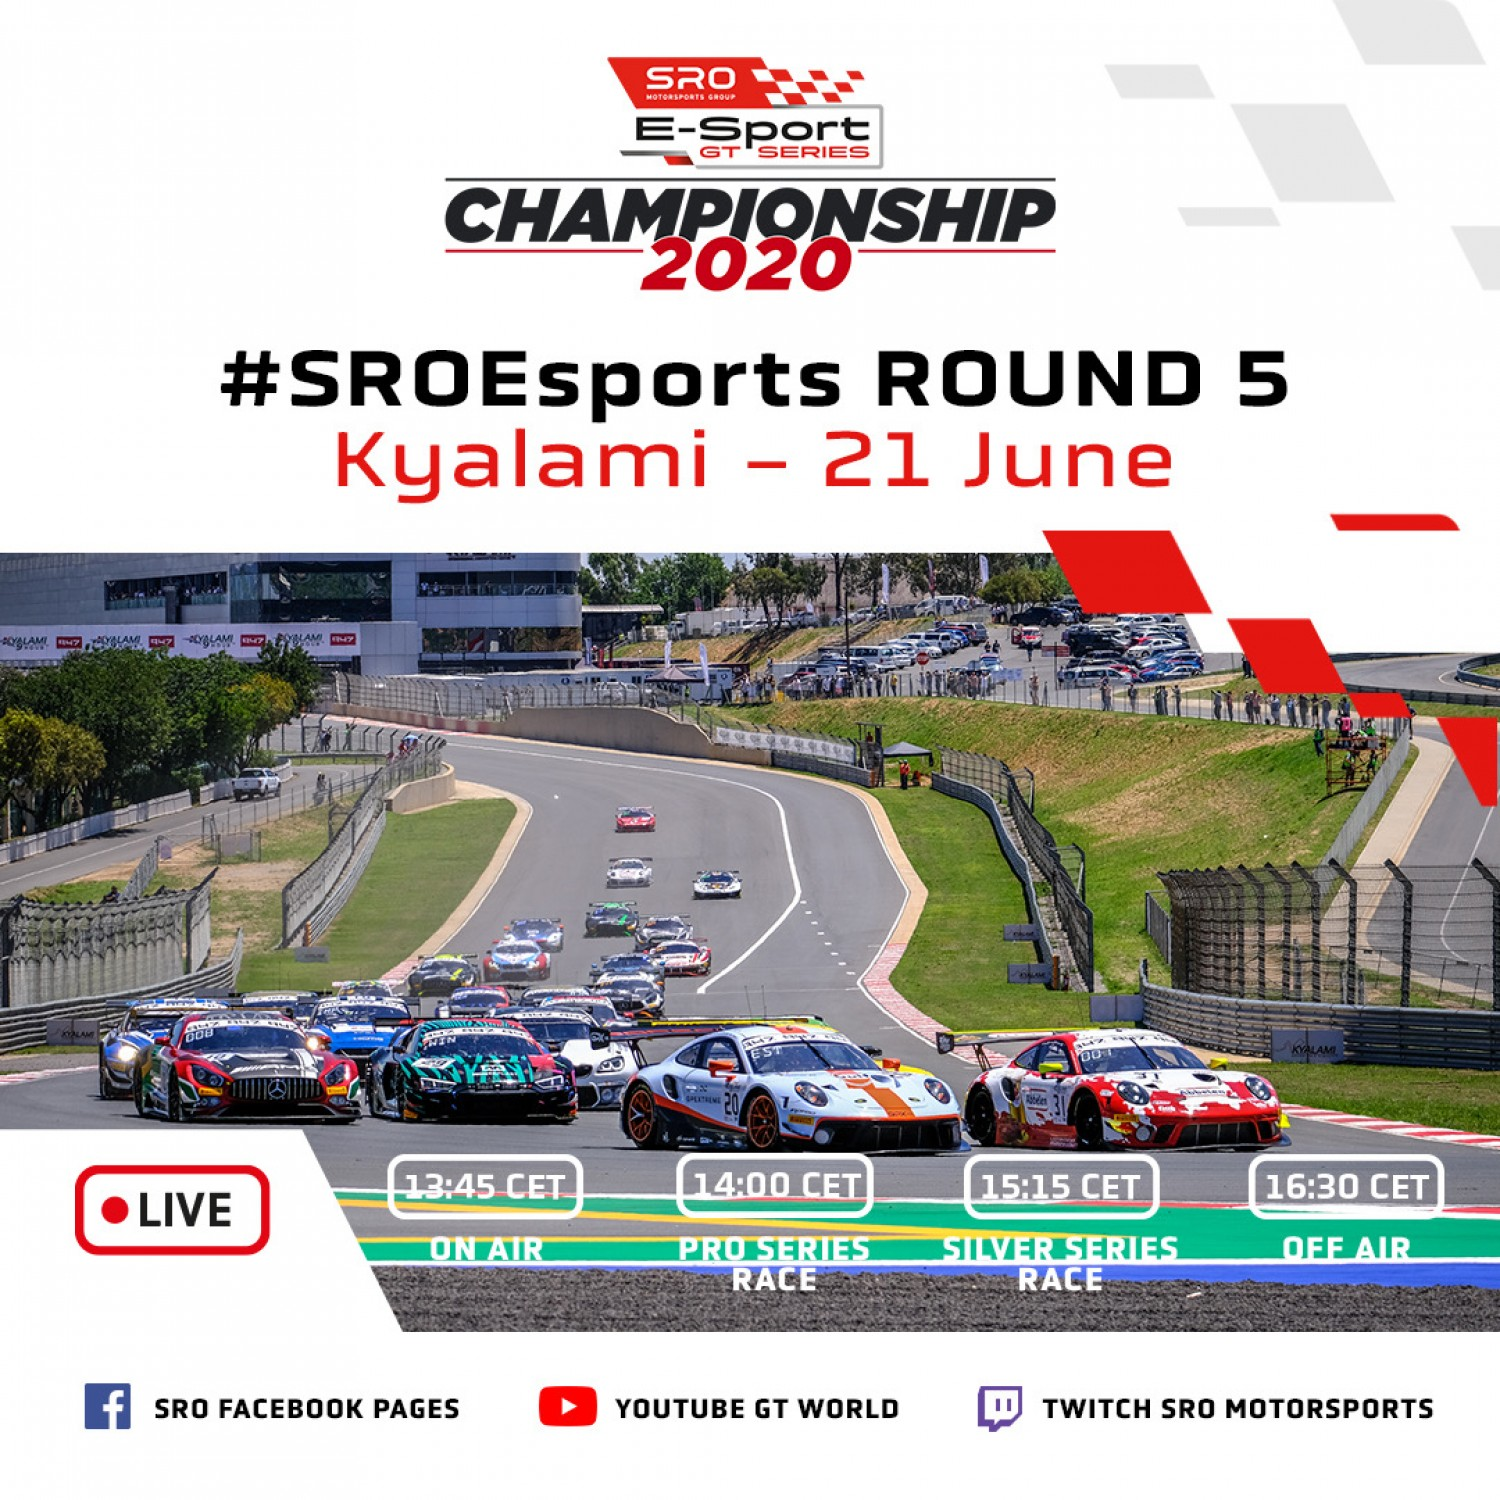 Action-packed weekend in store as SRO E-Sport GT Series prepares for title showdown